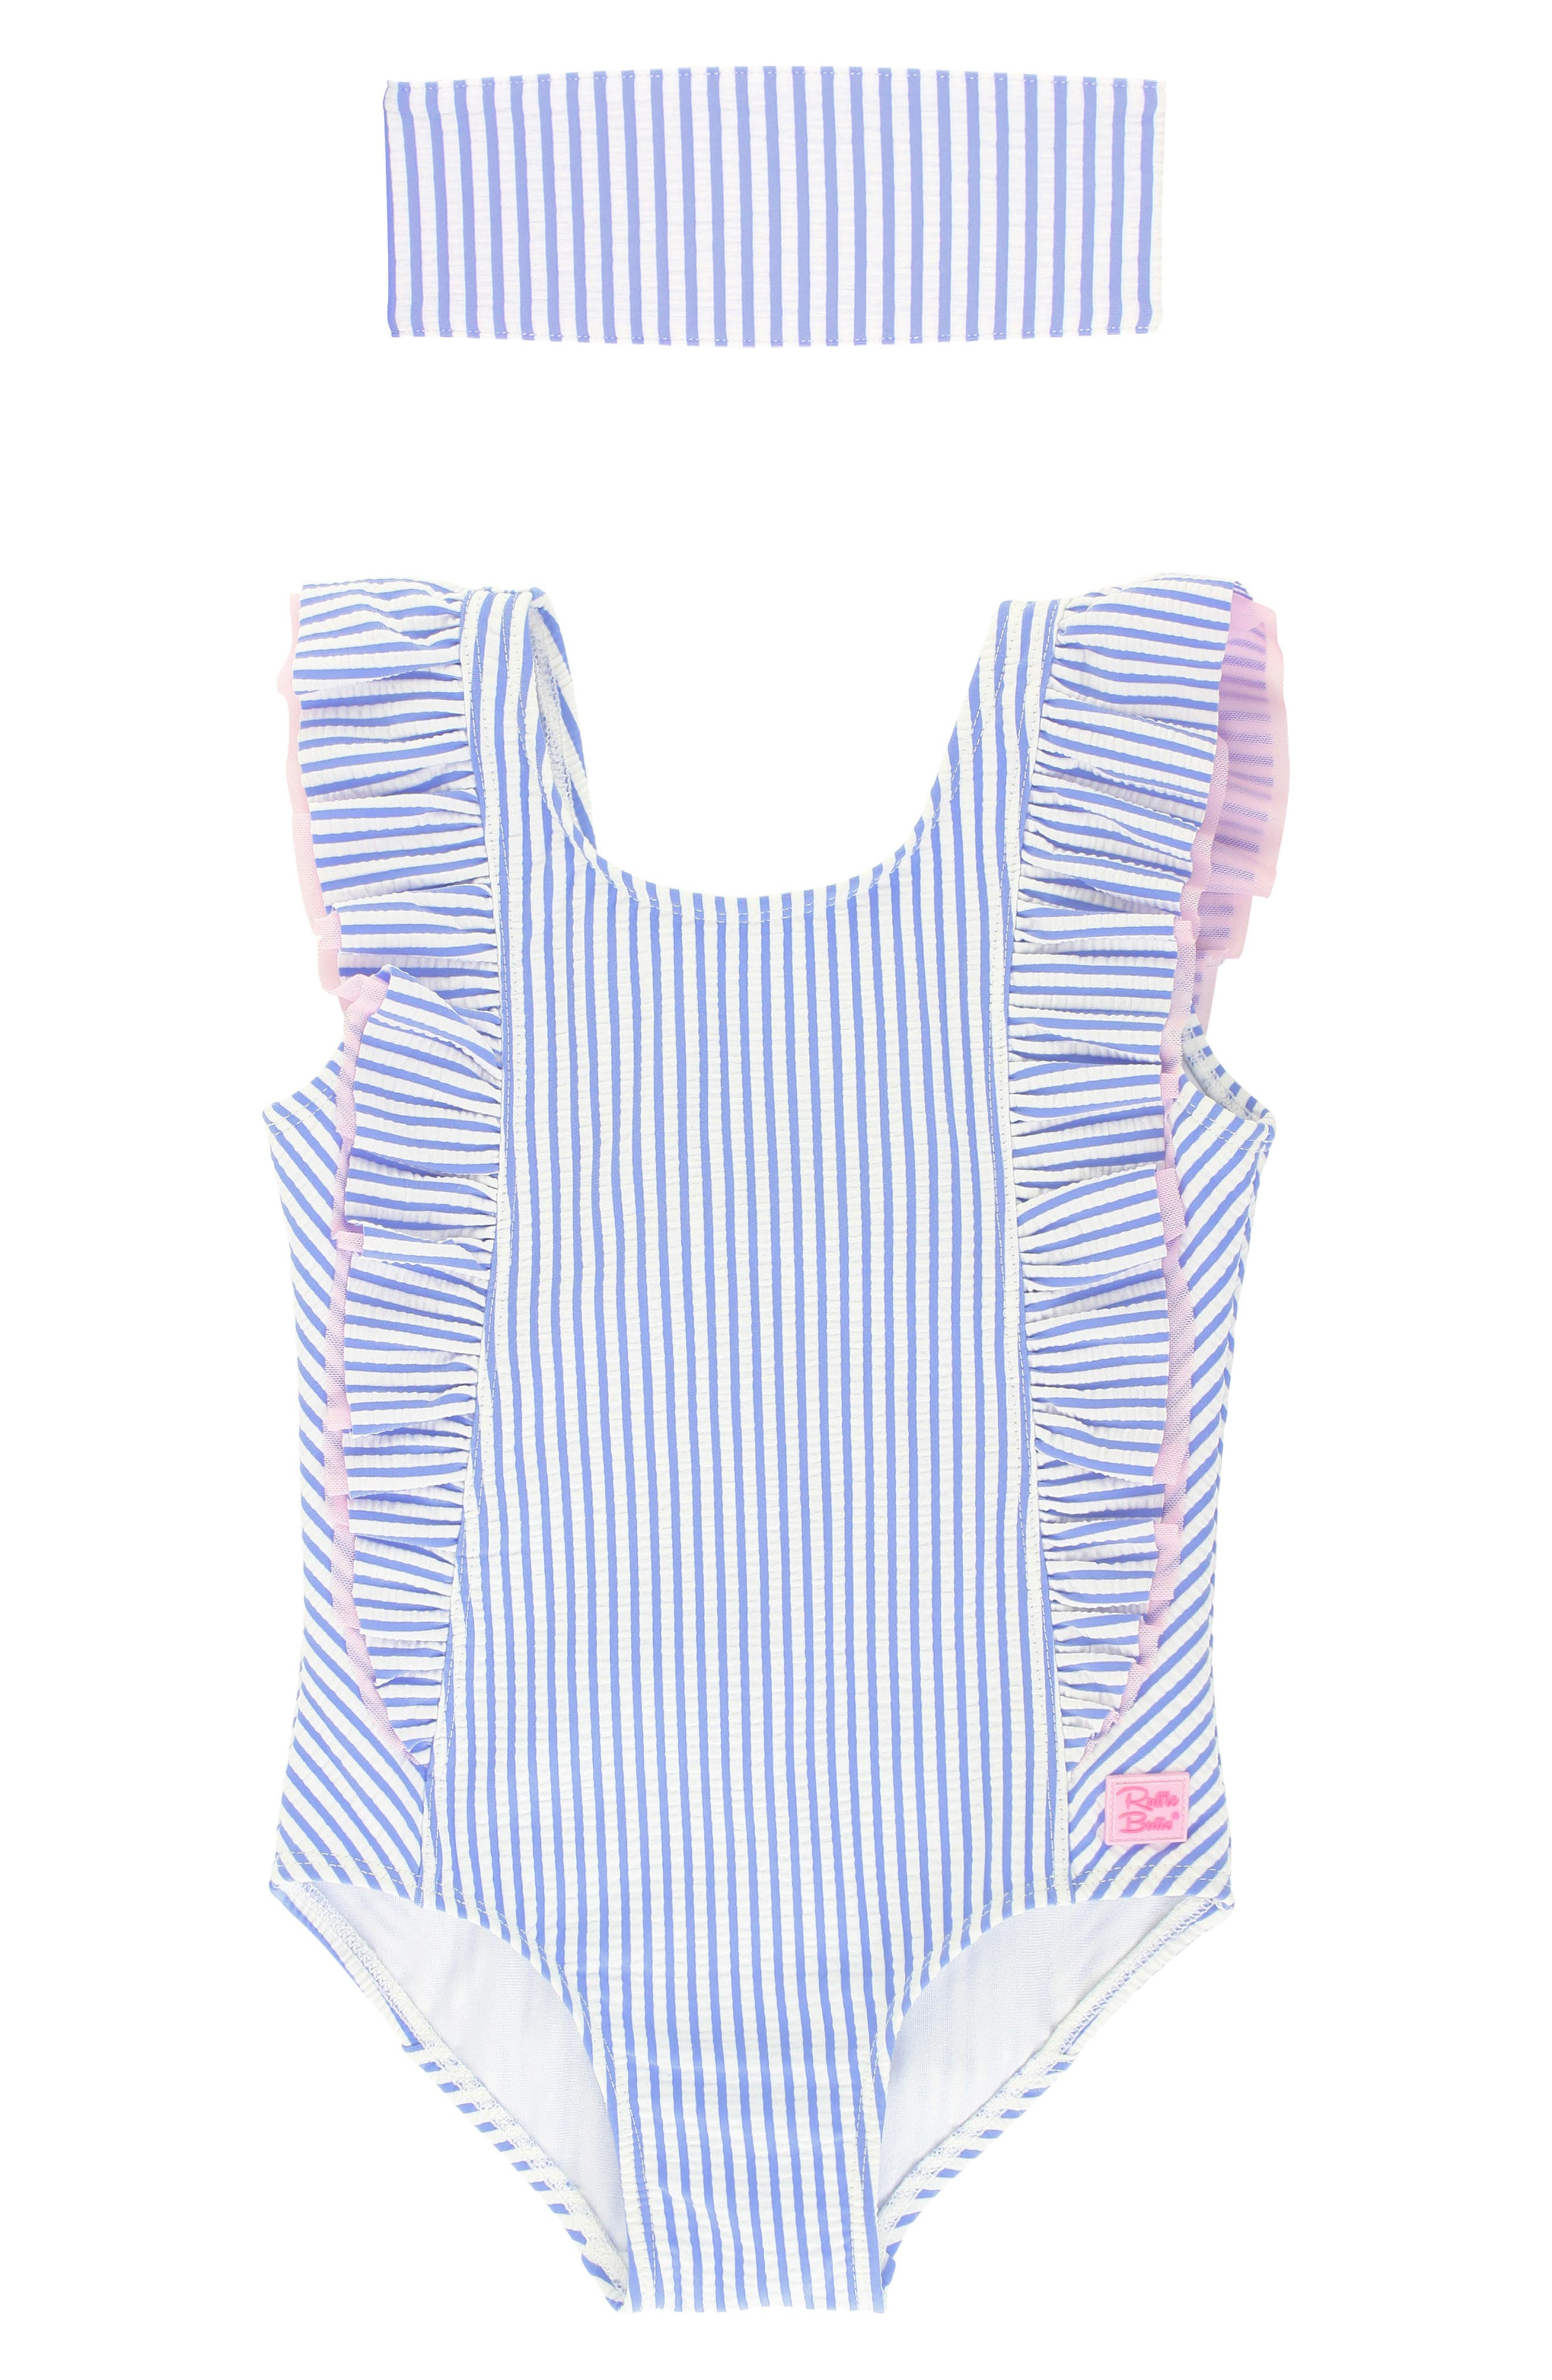 Seersucker stripes and signature ruffles make this one-piece swimsuit a beachy fave, while the matching head wrap provides an extra-sweet finishing touch. Style Name: Rufflebutts Seersucker Ruffle One-Piece Swimsuit & Head Wrap Set (Toddler Girls & Little Girls). Style Number: 6000248. Available in stores.